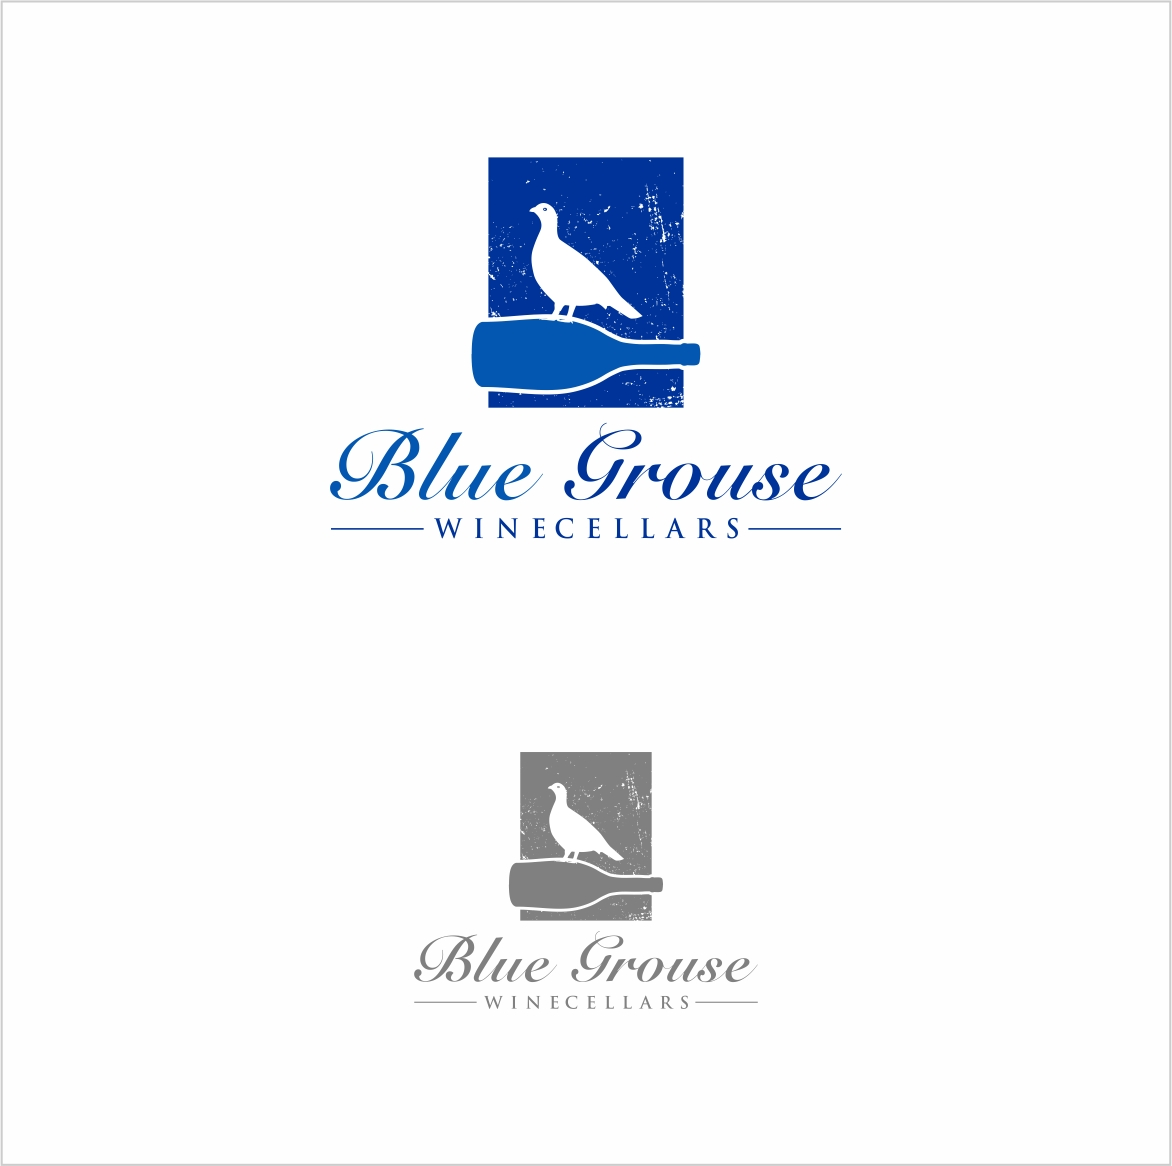 Logo Design by haidu - Entry No. 243 in the Logo Design Contest Creative Logo Design for Blue Grouse Wine Cellars.